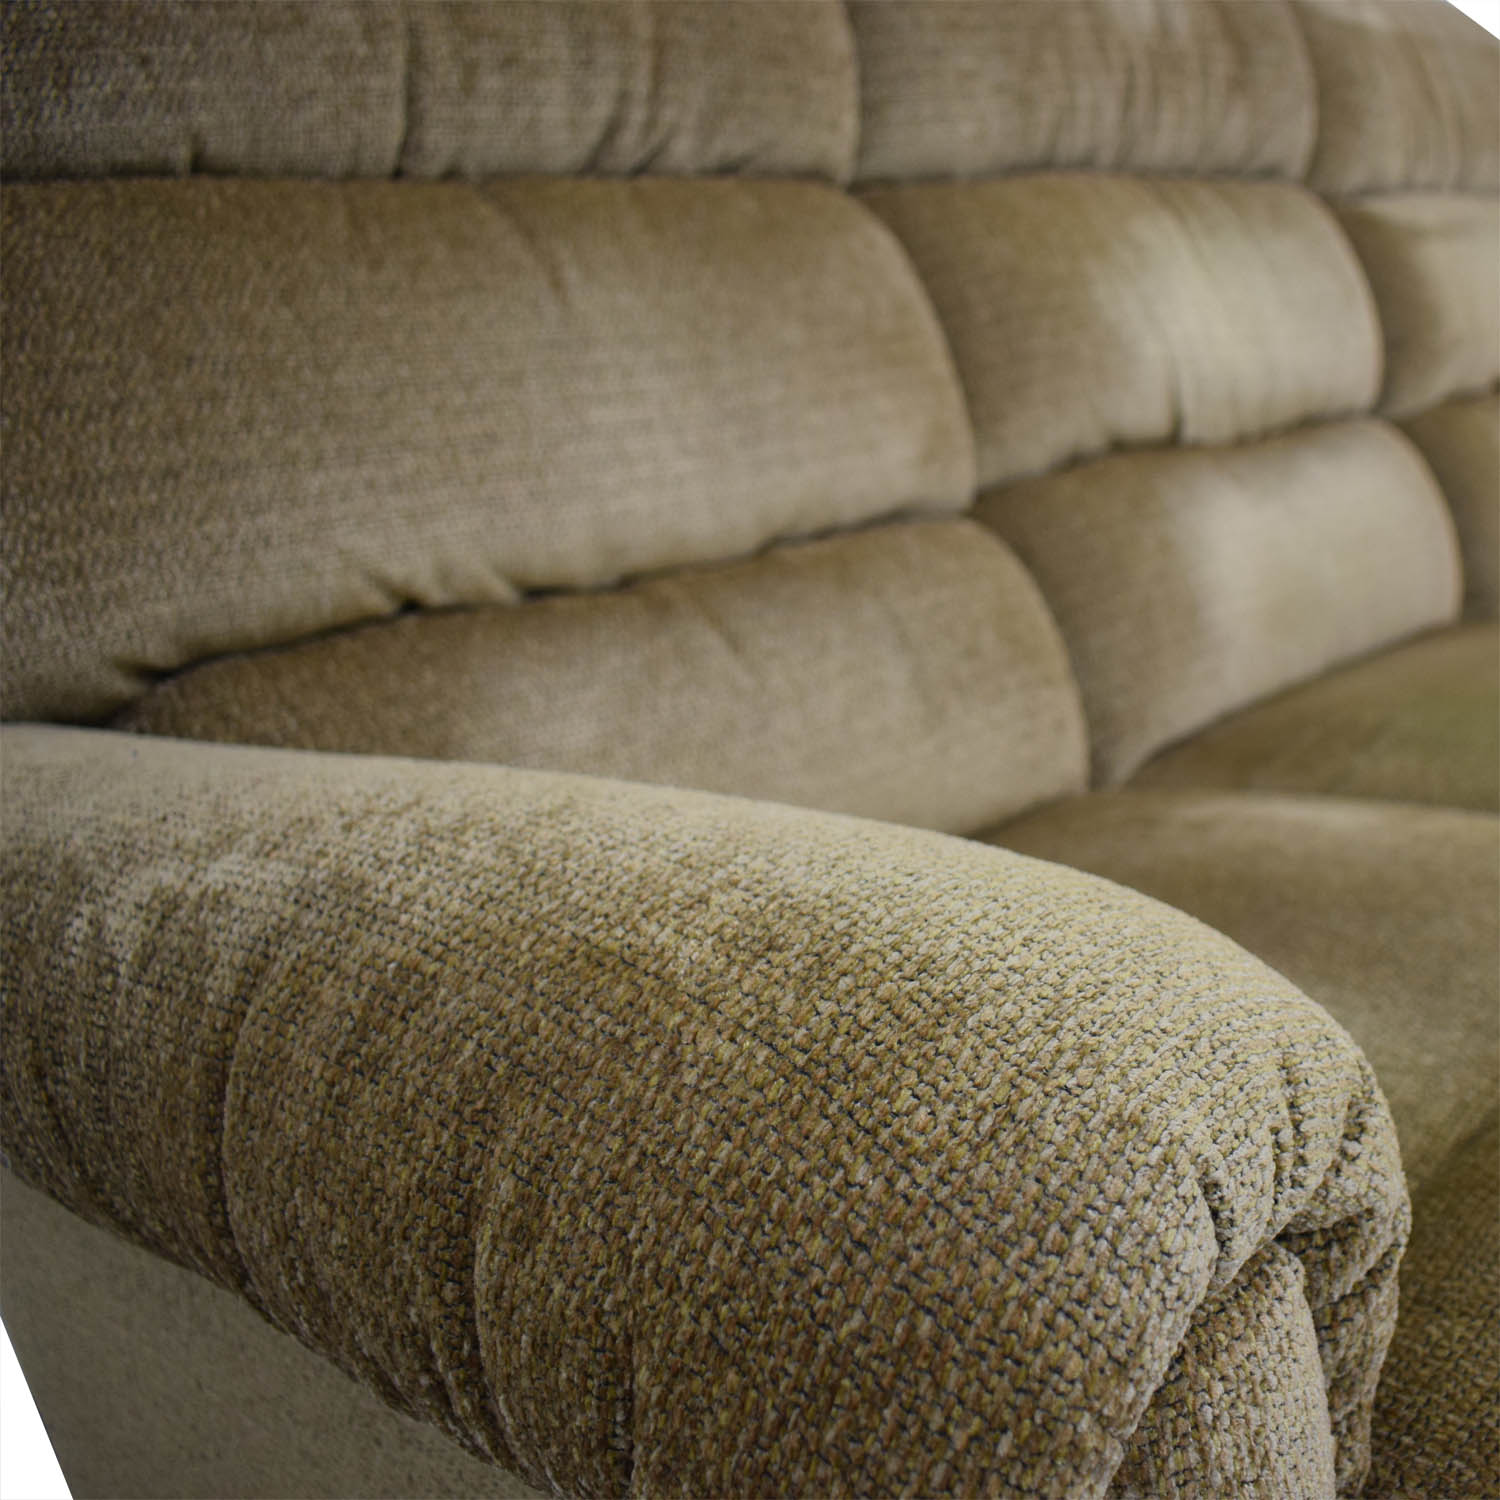 La-Z-Boy La-Z-Boy Tan Reclining Three-Cushion Sofa used